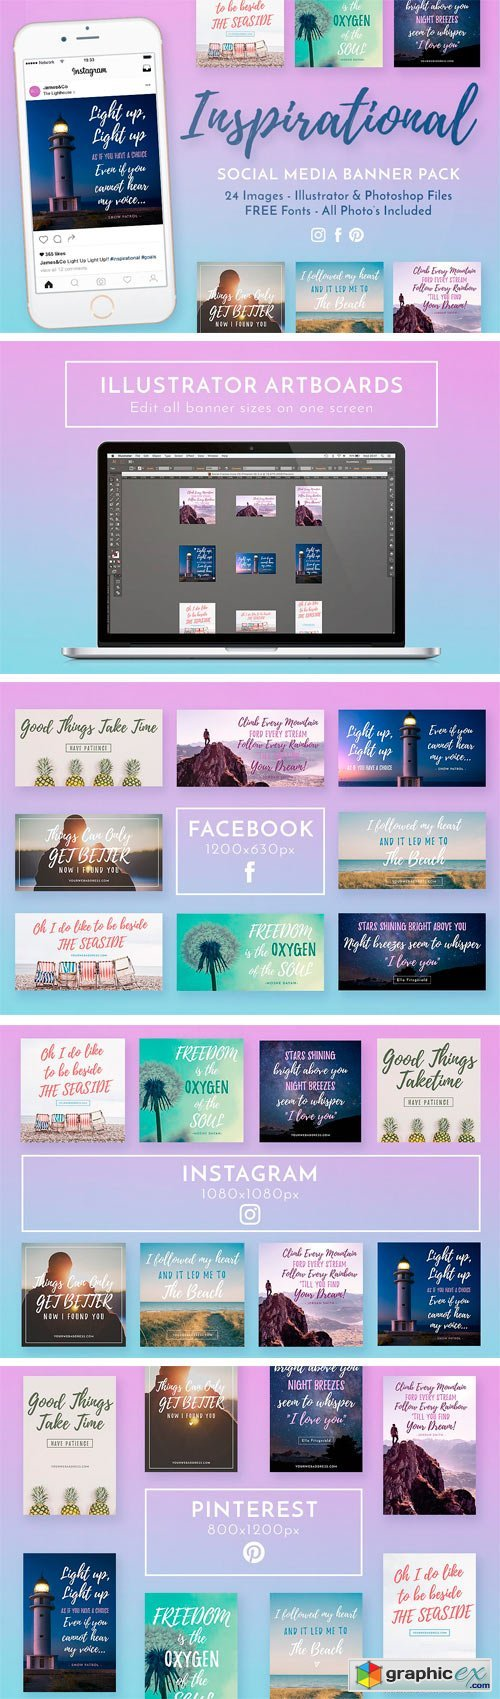 Inspirational Social Media Banners